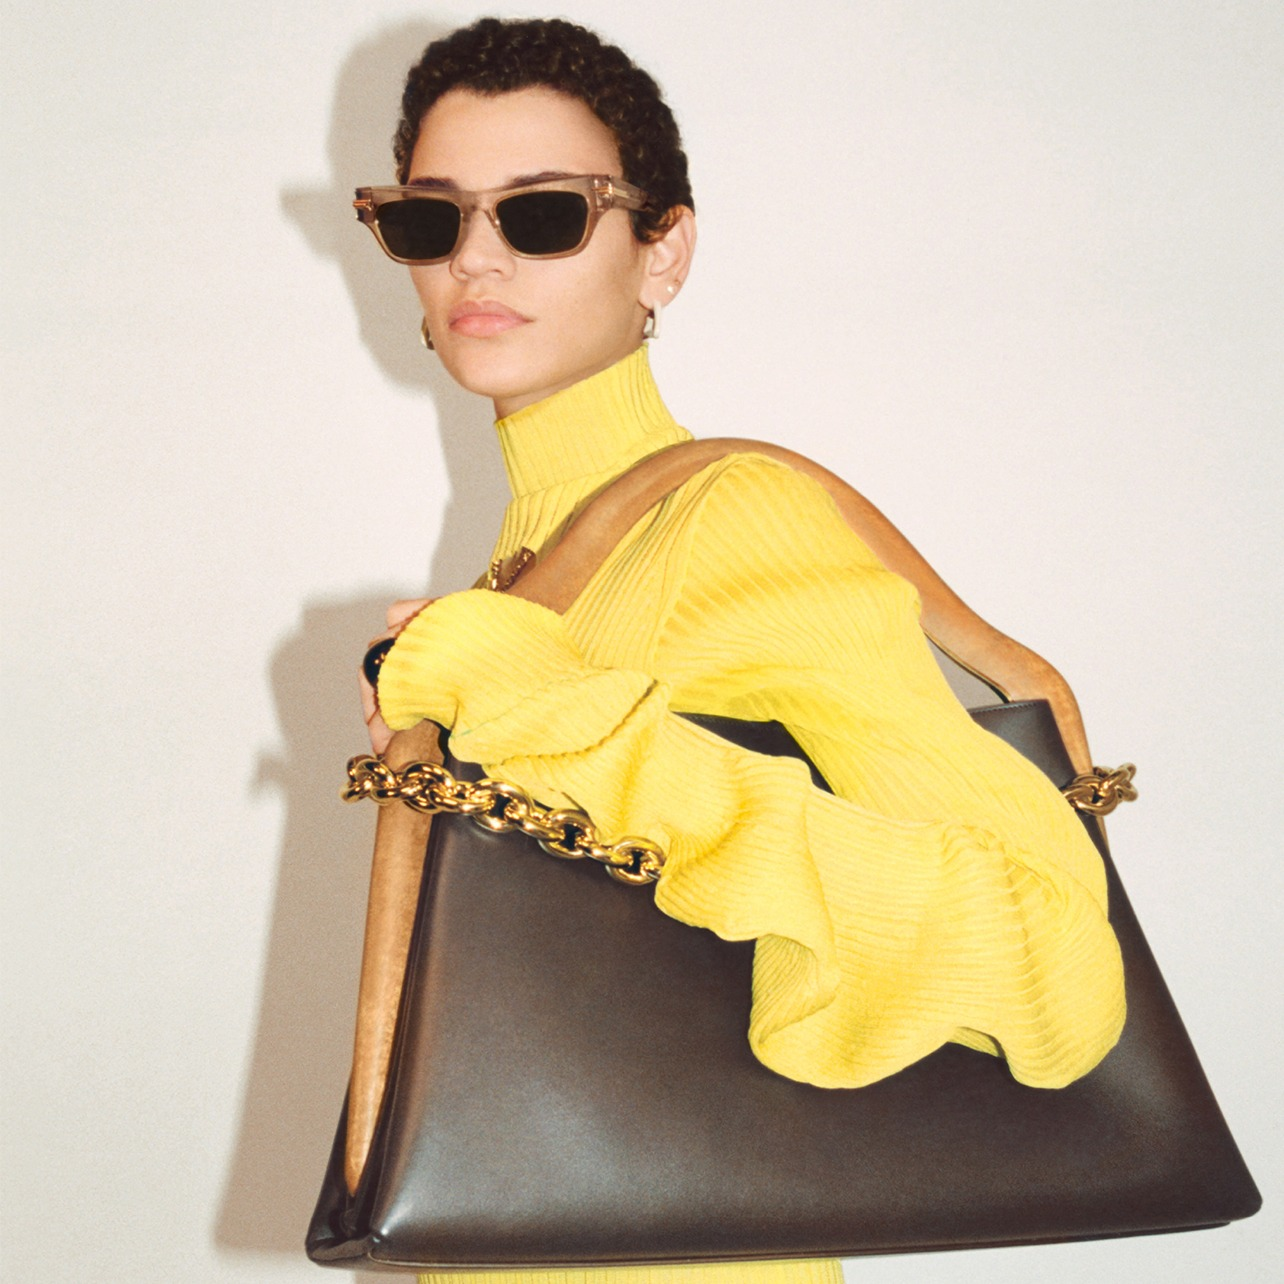 Woman poses in a high-neck yellow sweater dress while holding a large shoulder bag with gold chain detailing